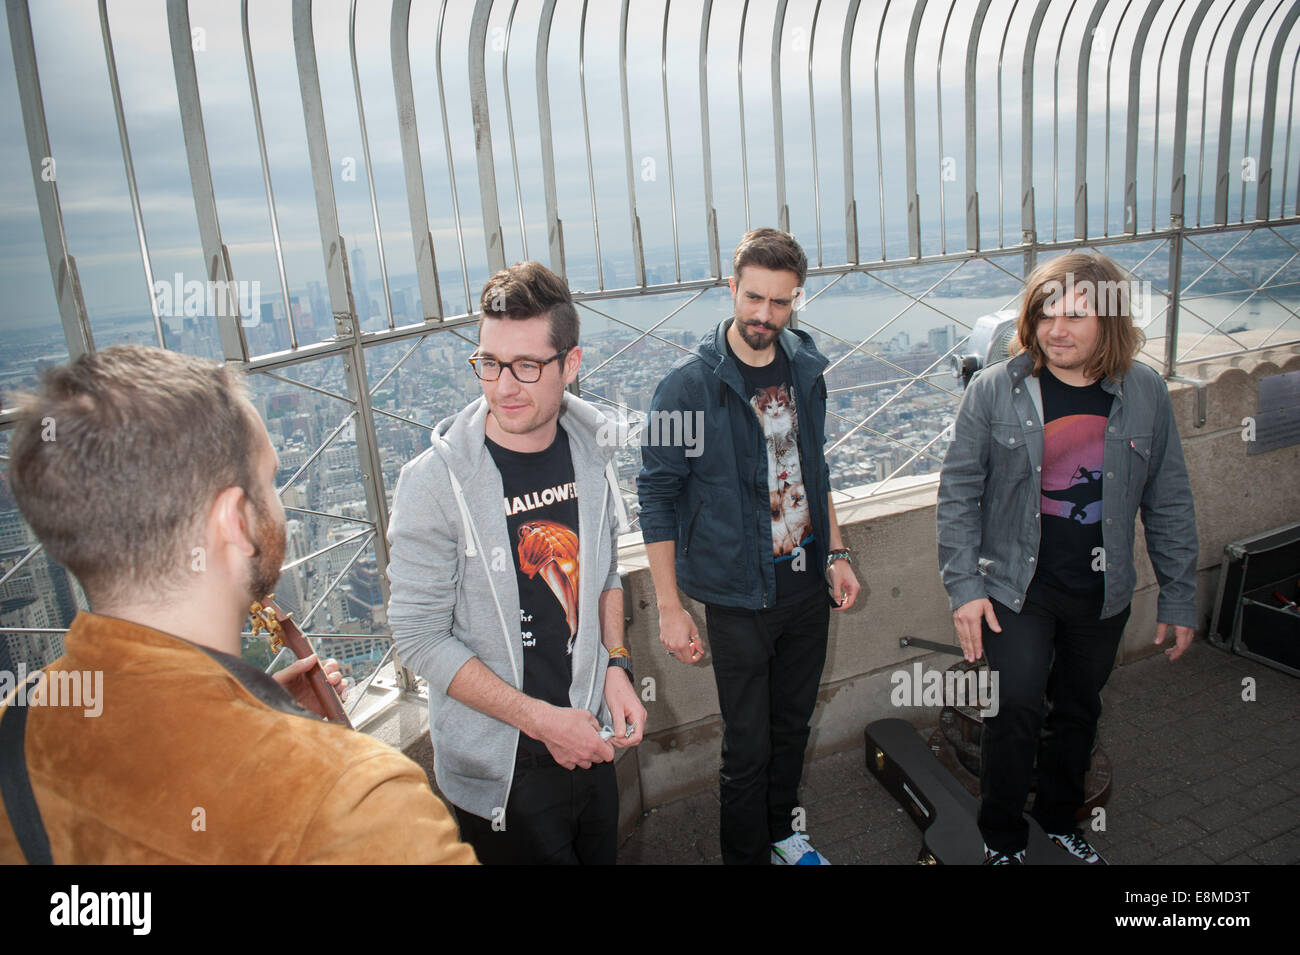 Manhattan, New York, USA. 10th Oct, 2014. The English rock band ...